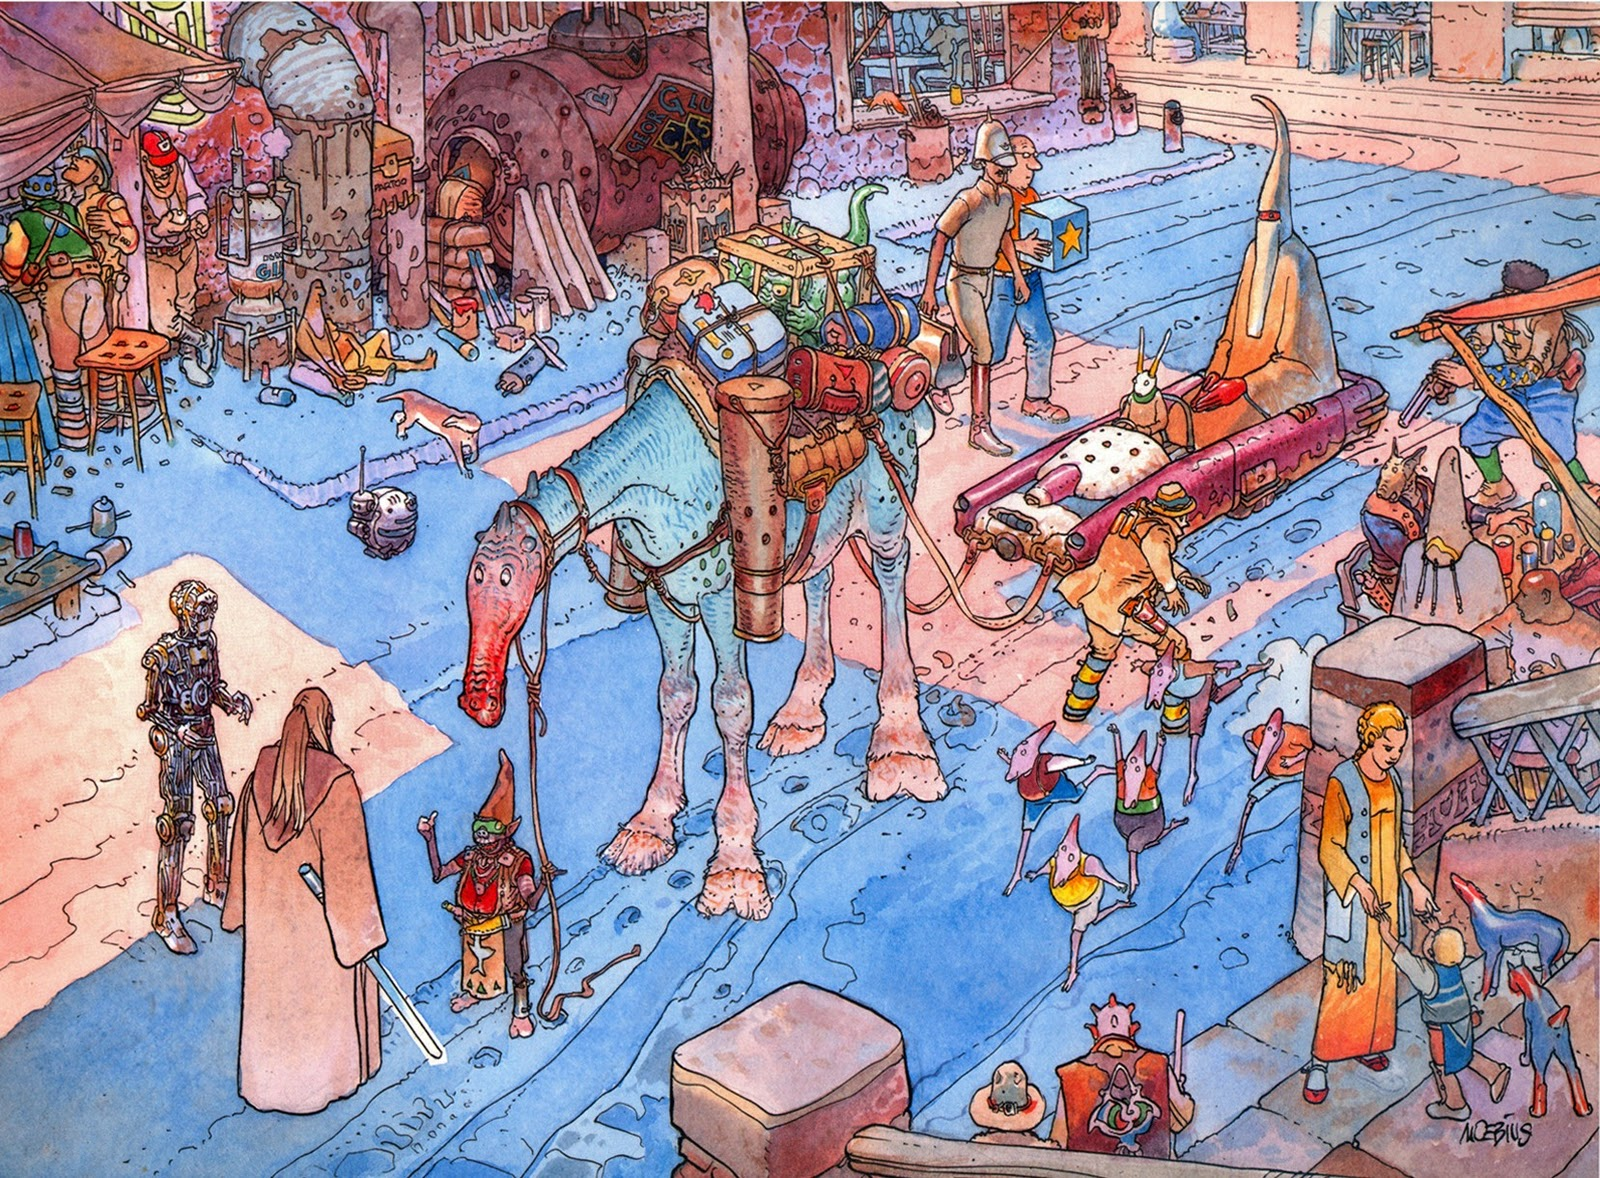 Star Wars Visions Moebius Au revoir Jean Giraud Moebius